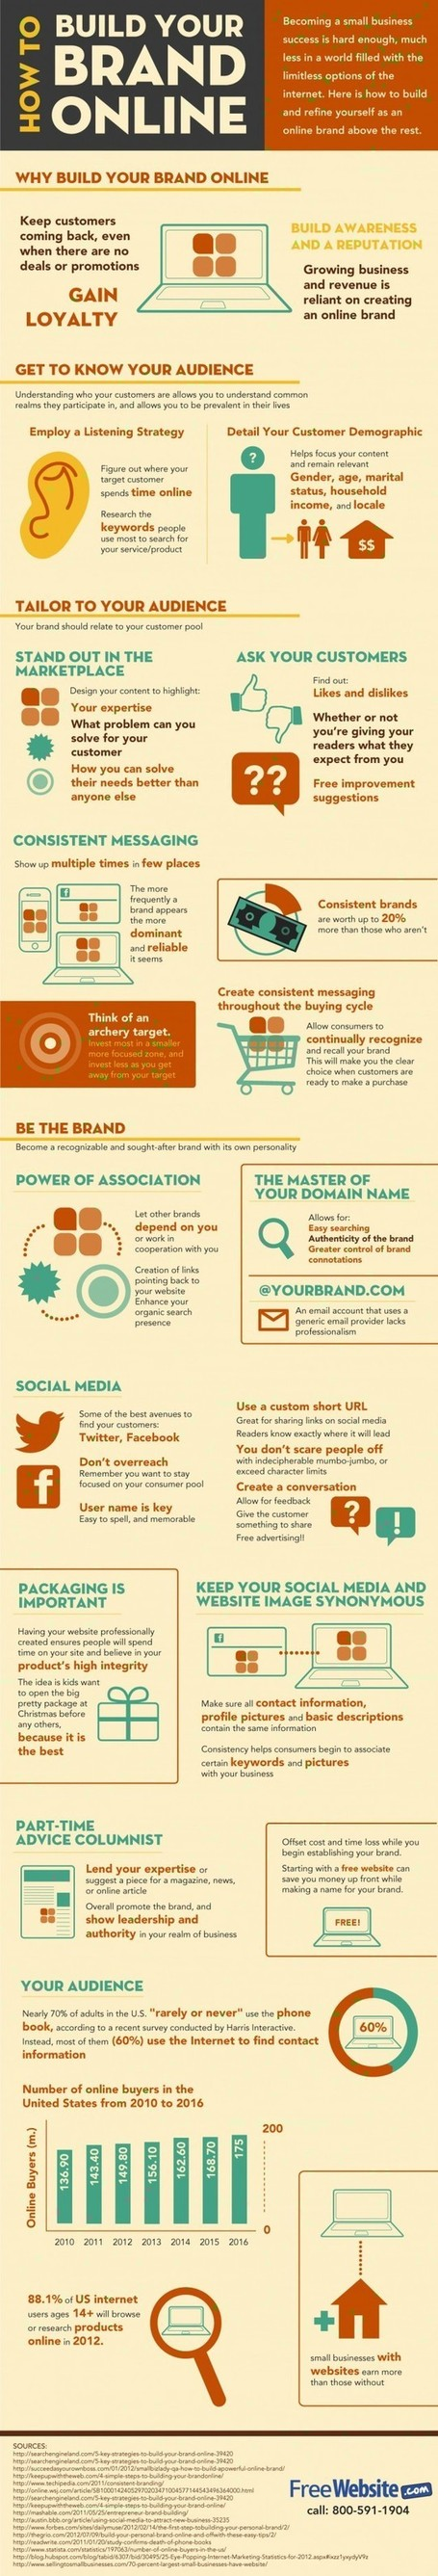 Why You Need to Build Your Brand Online [infographic] | Digital-News on Scoop.it today | Scoop.it